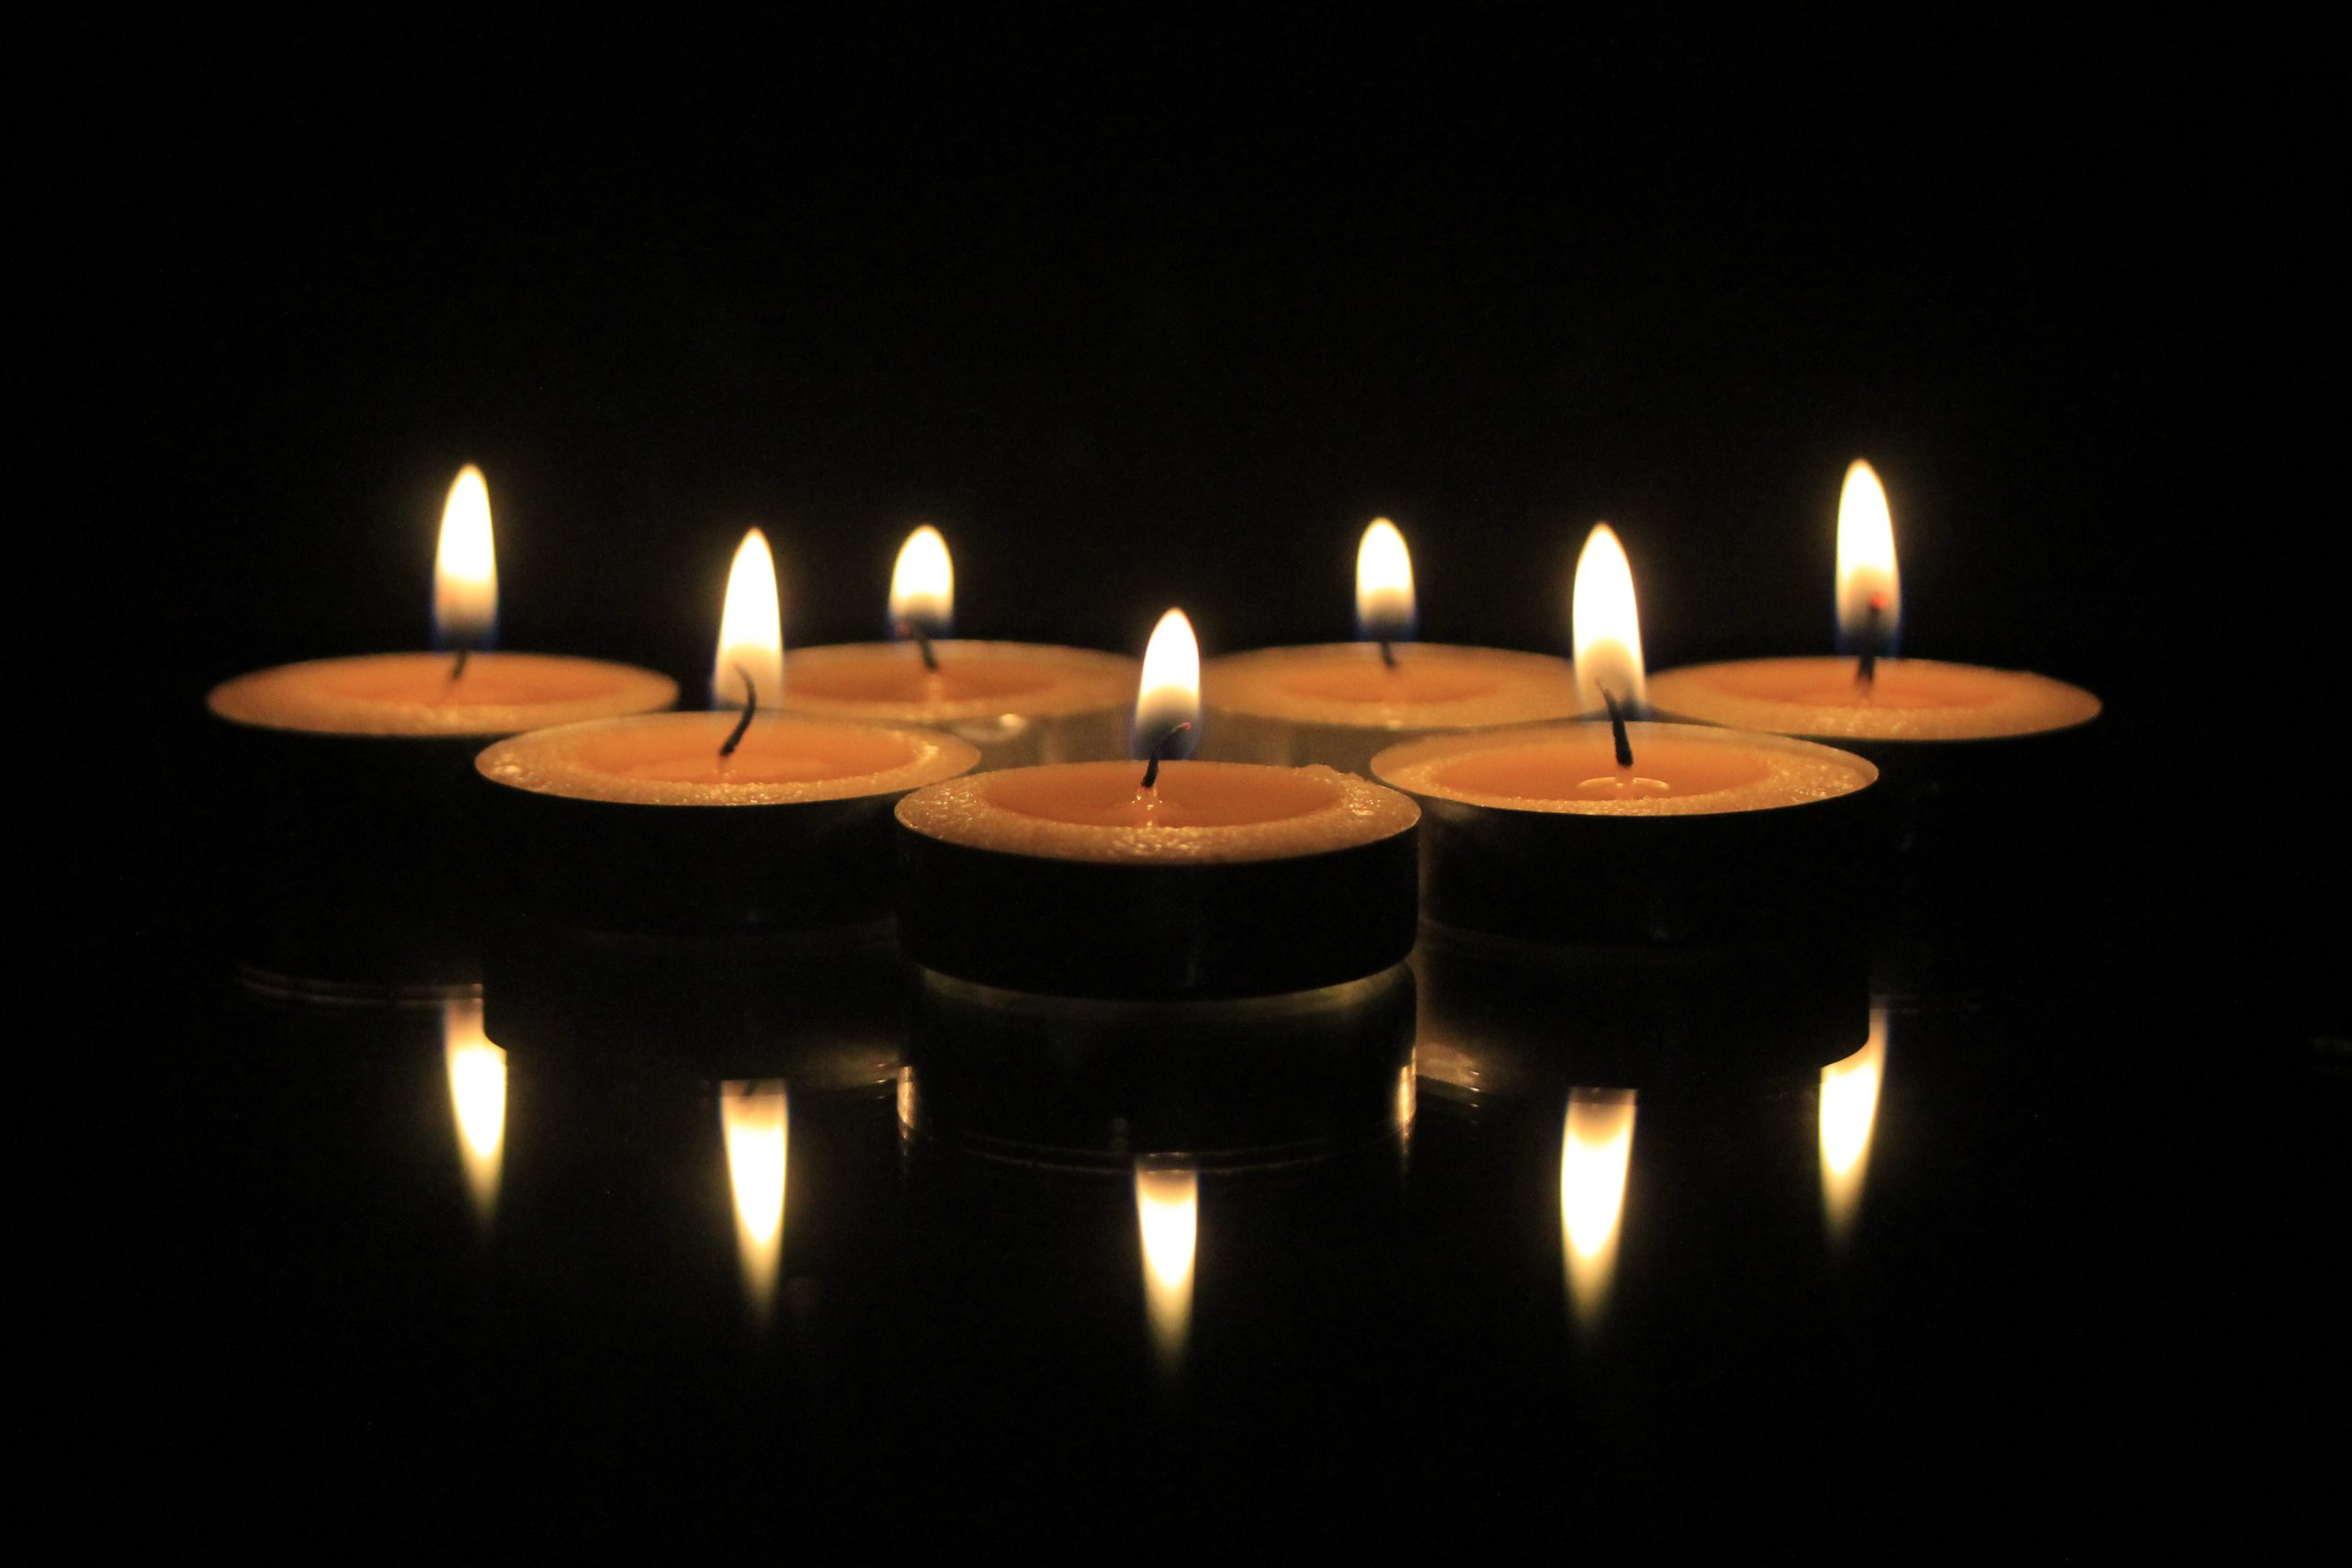 Oil lamps for Diwali celebration